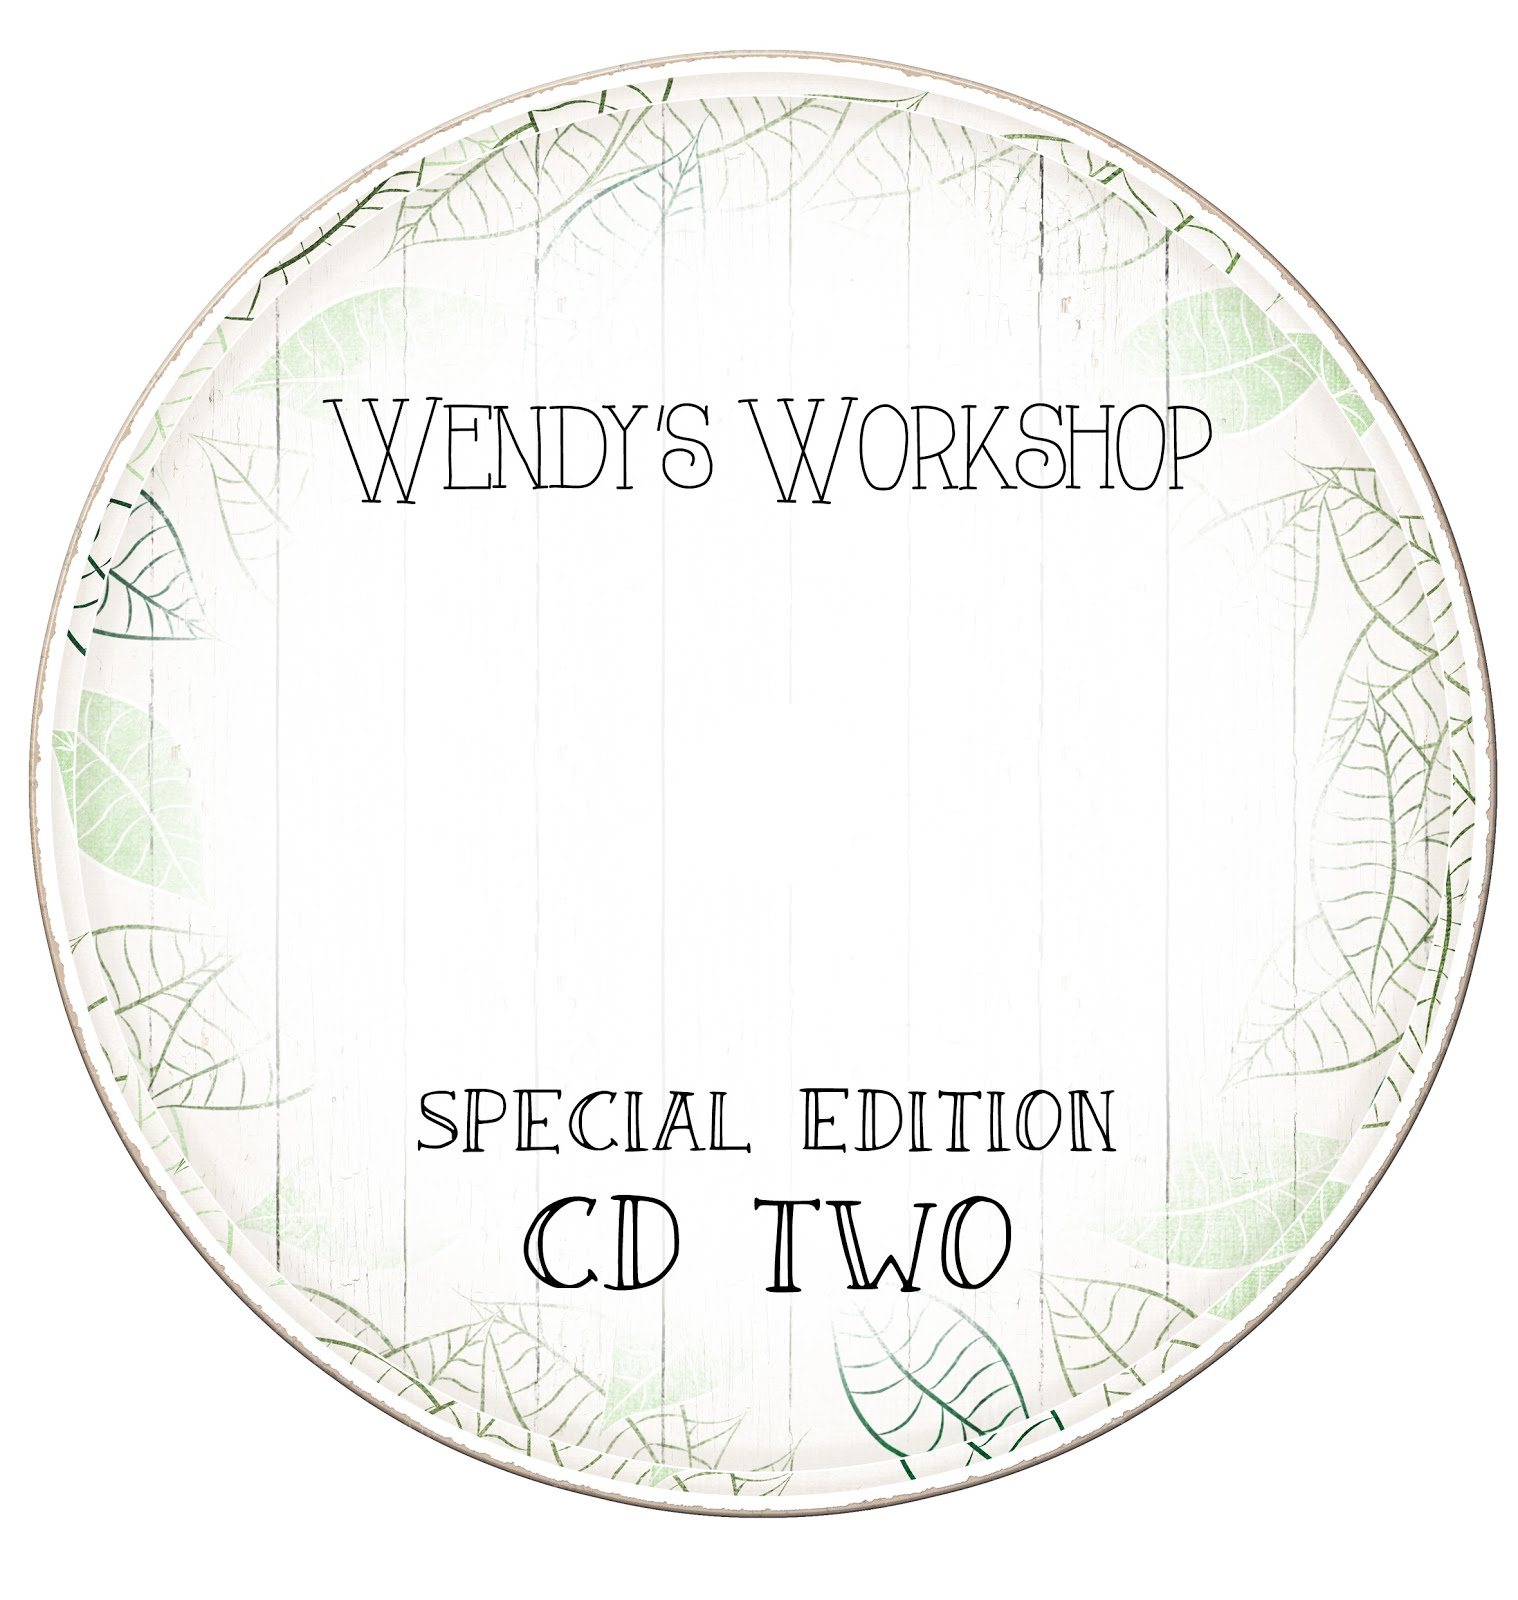 WENDY'S WORKSHOP SPECIAL EDITION TWO £14.99